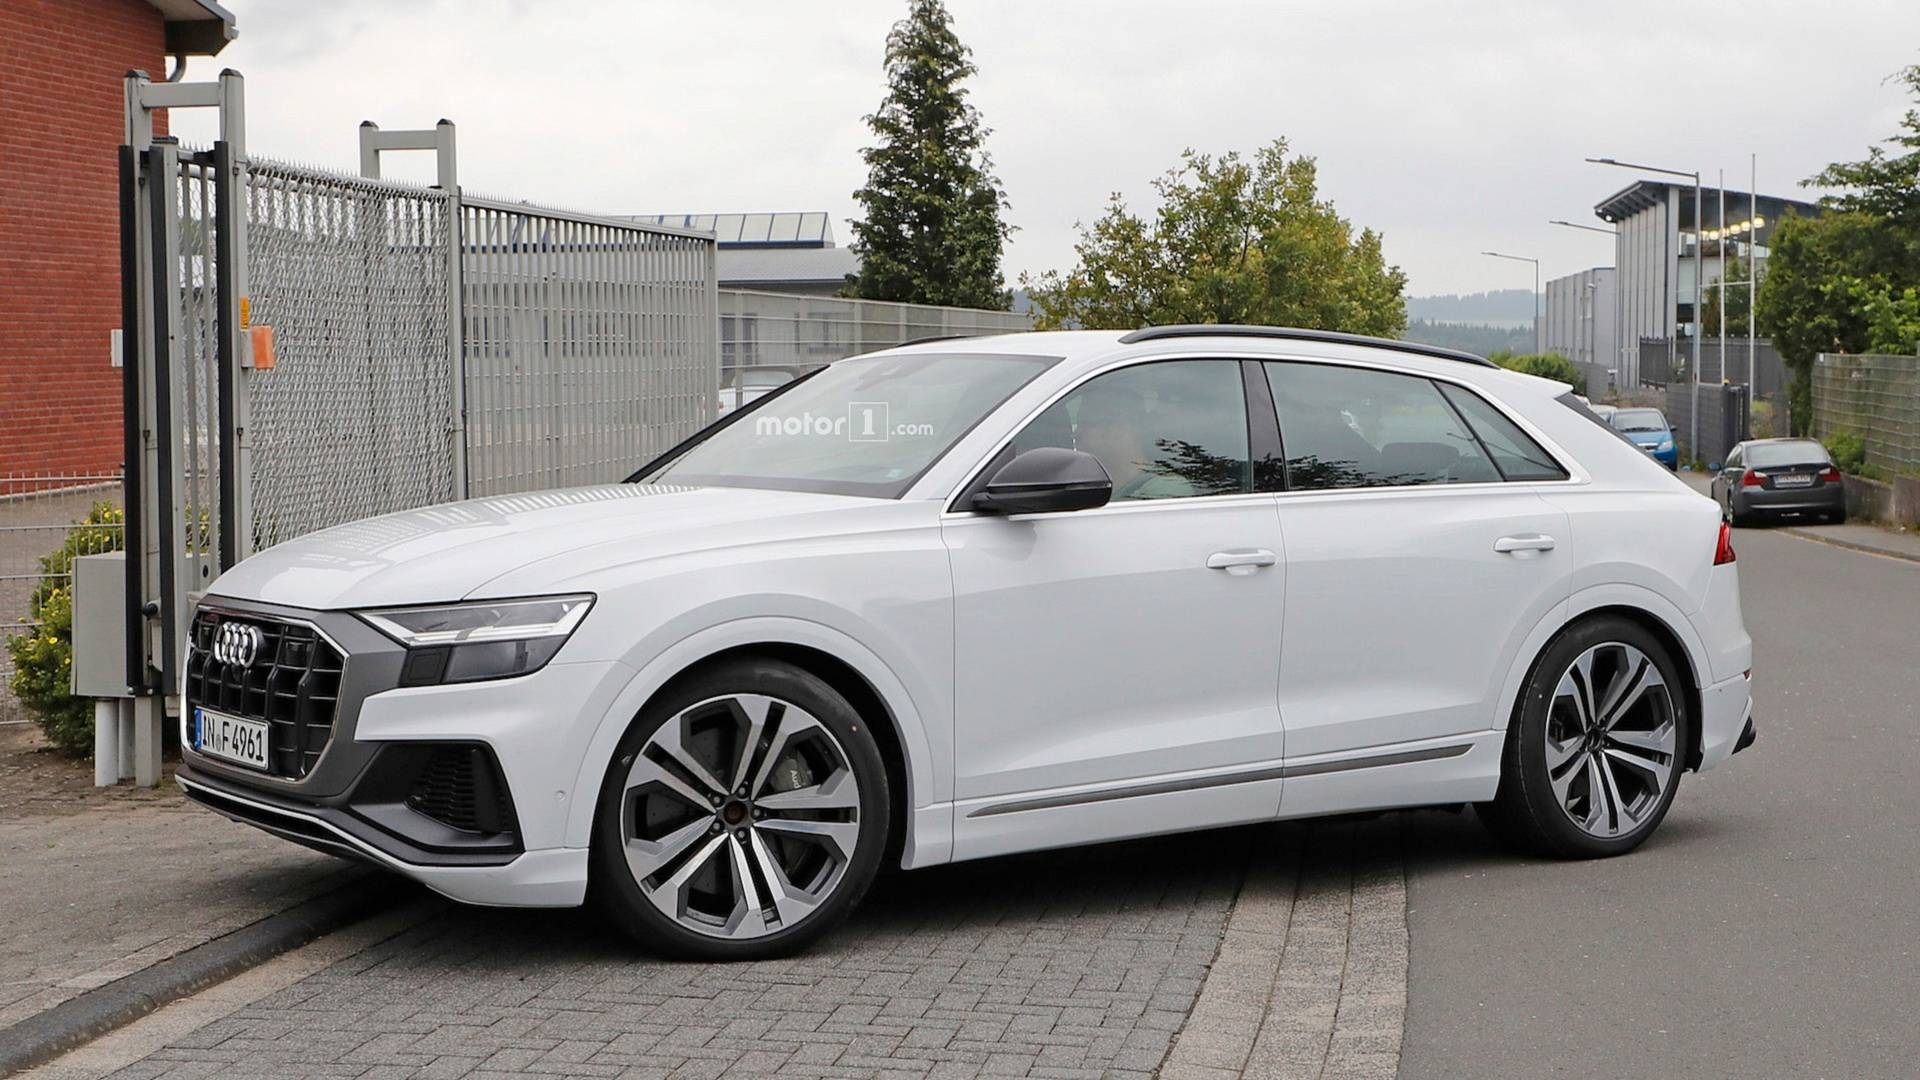 audi-sq8-uncovered-spy-photos.jpg